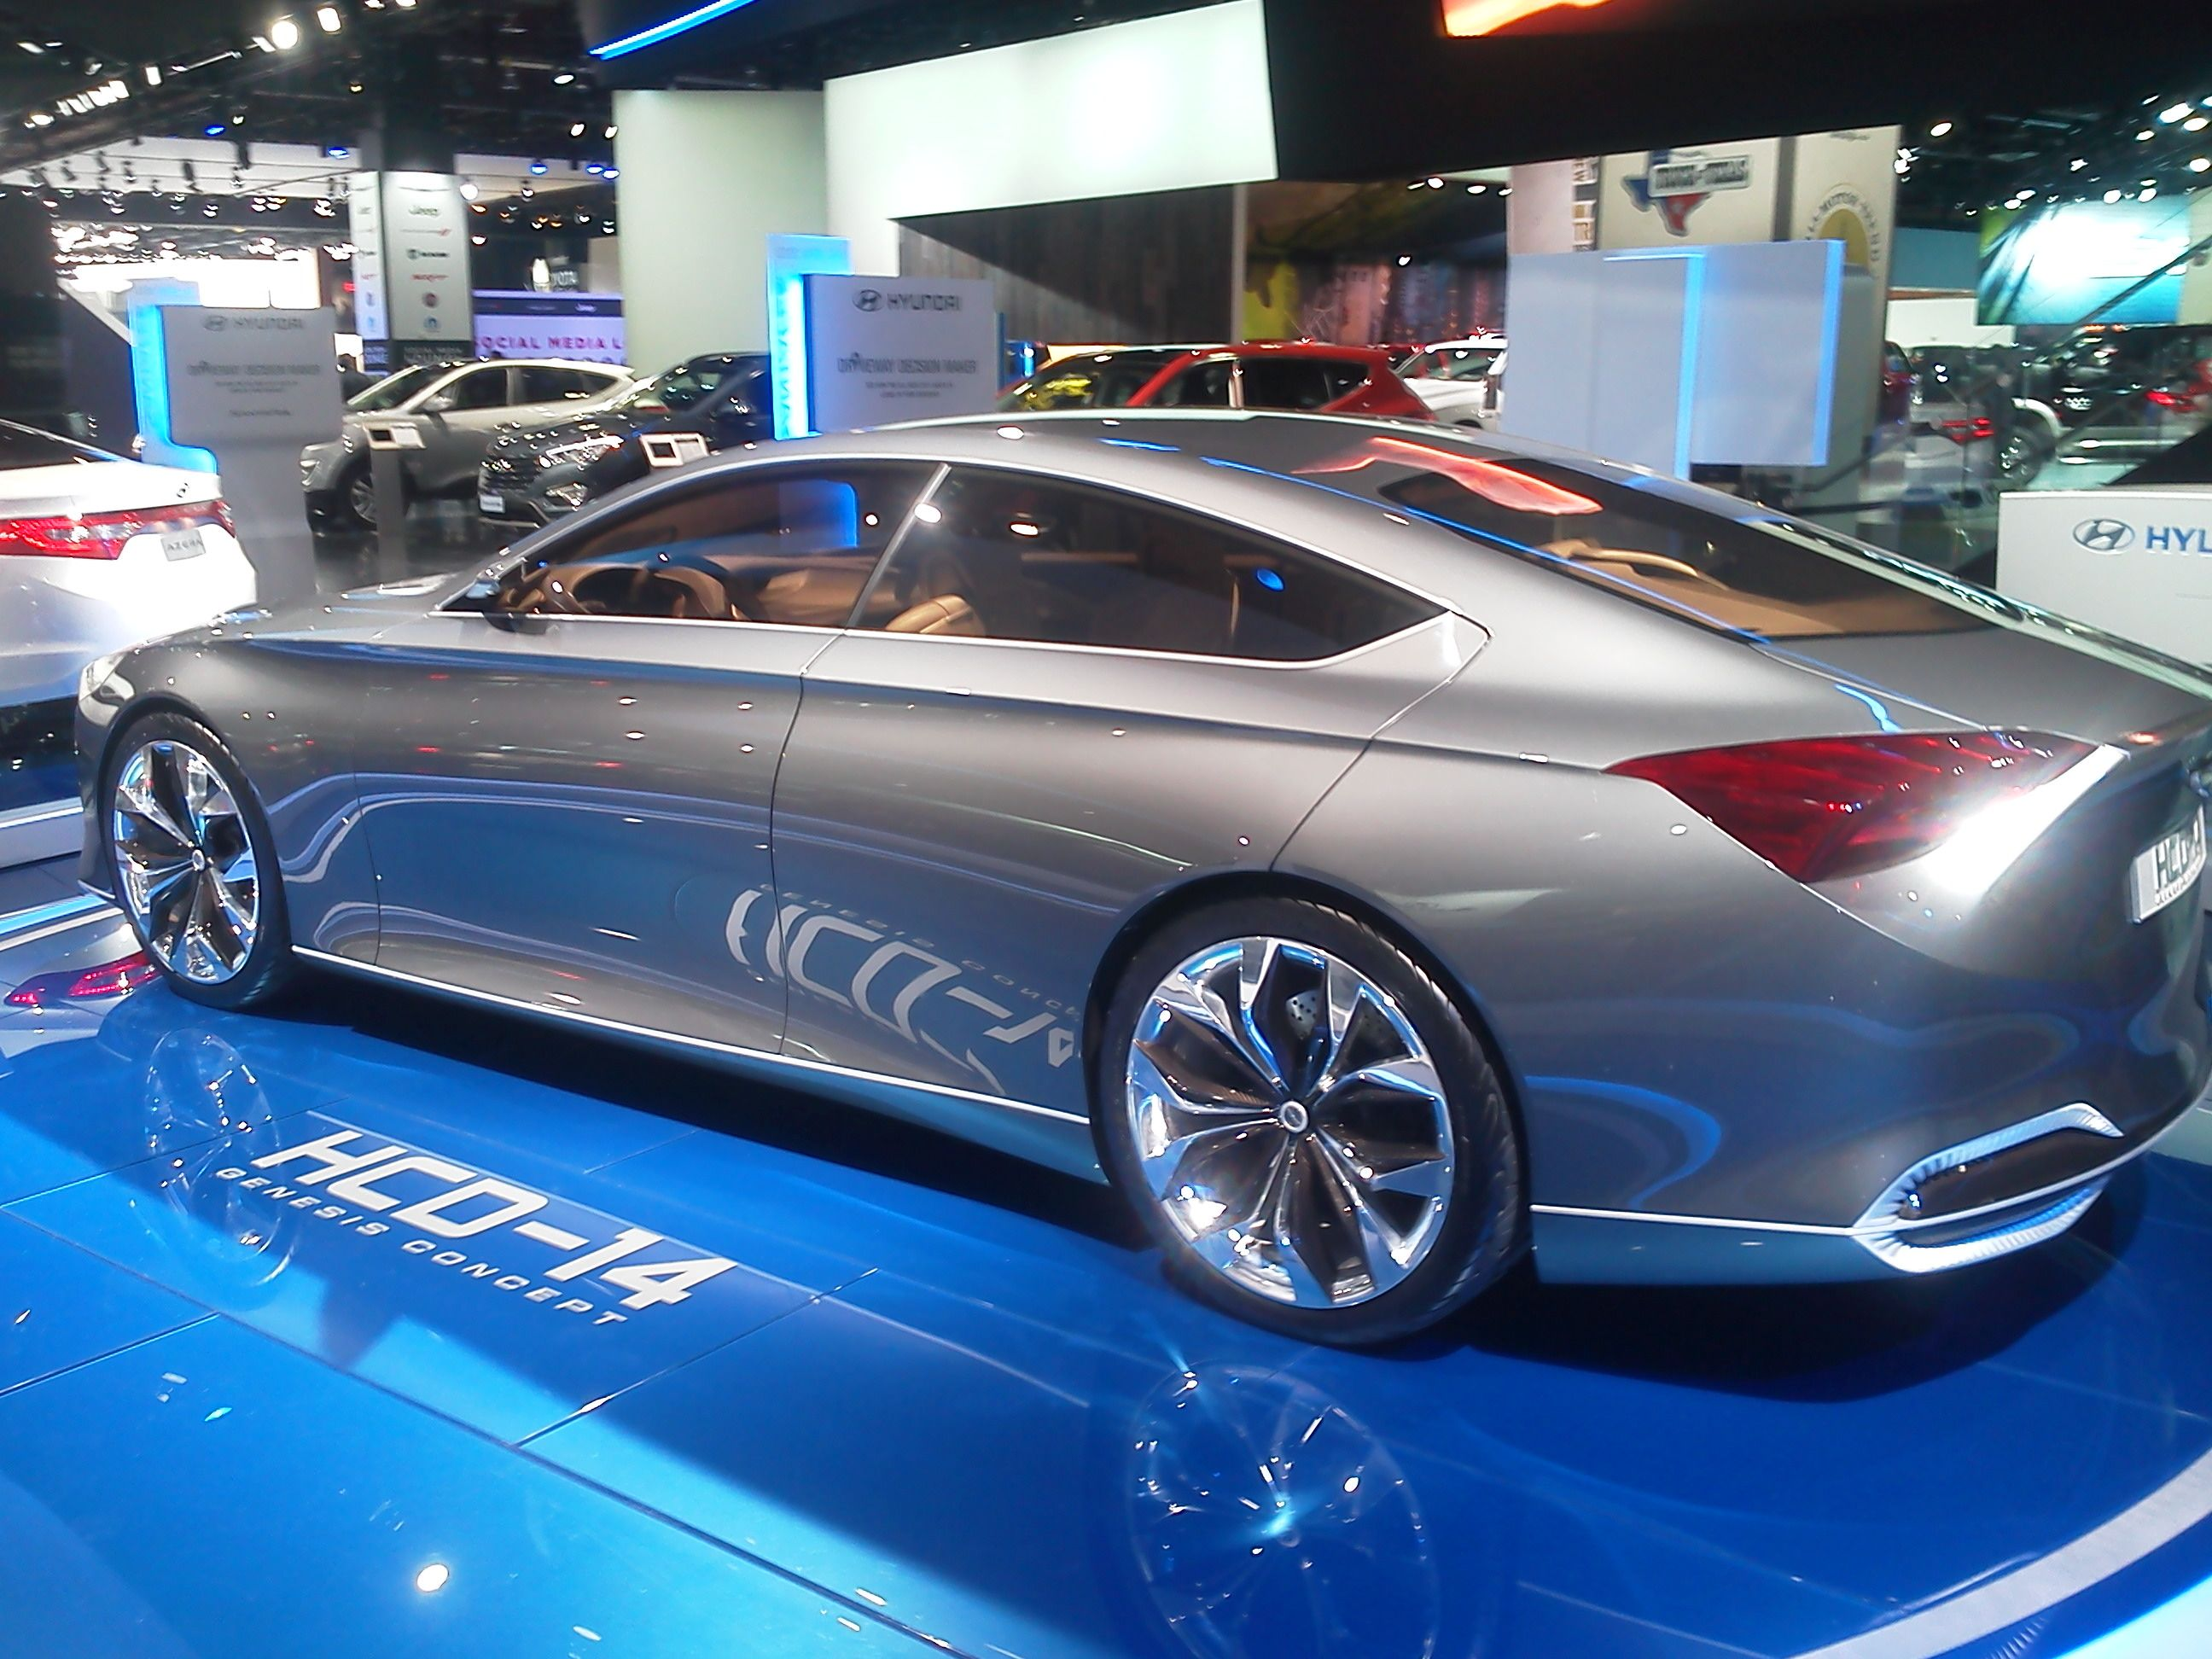 My Favorite Concept At The Detroit Auto Show Was Hyundai S Hcd 14 Can T Wait For This One Hyundai Hyundai Dealership Fancy Cars